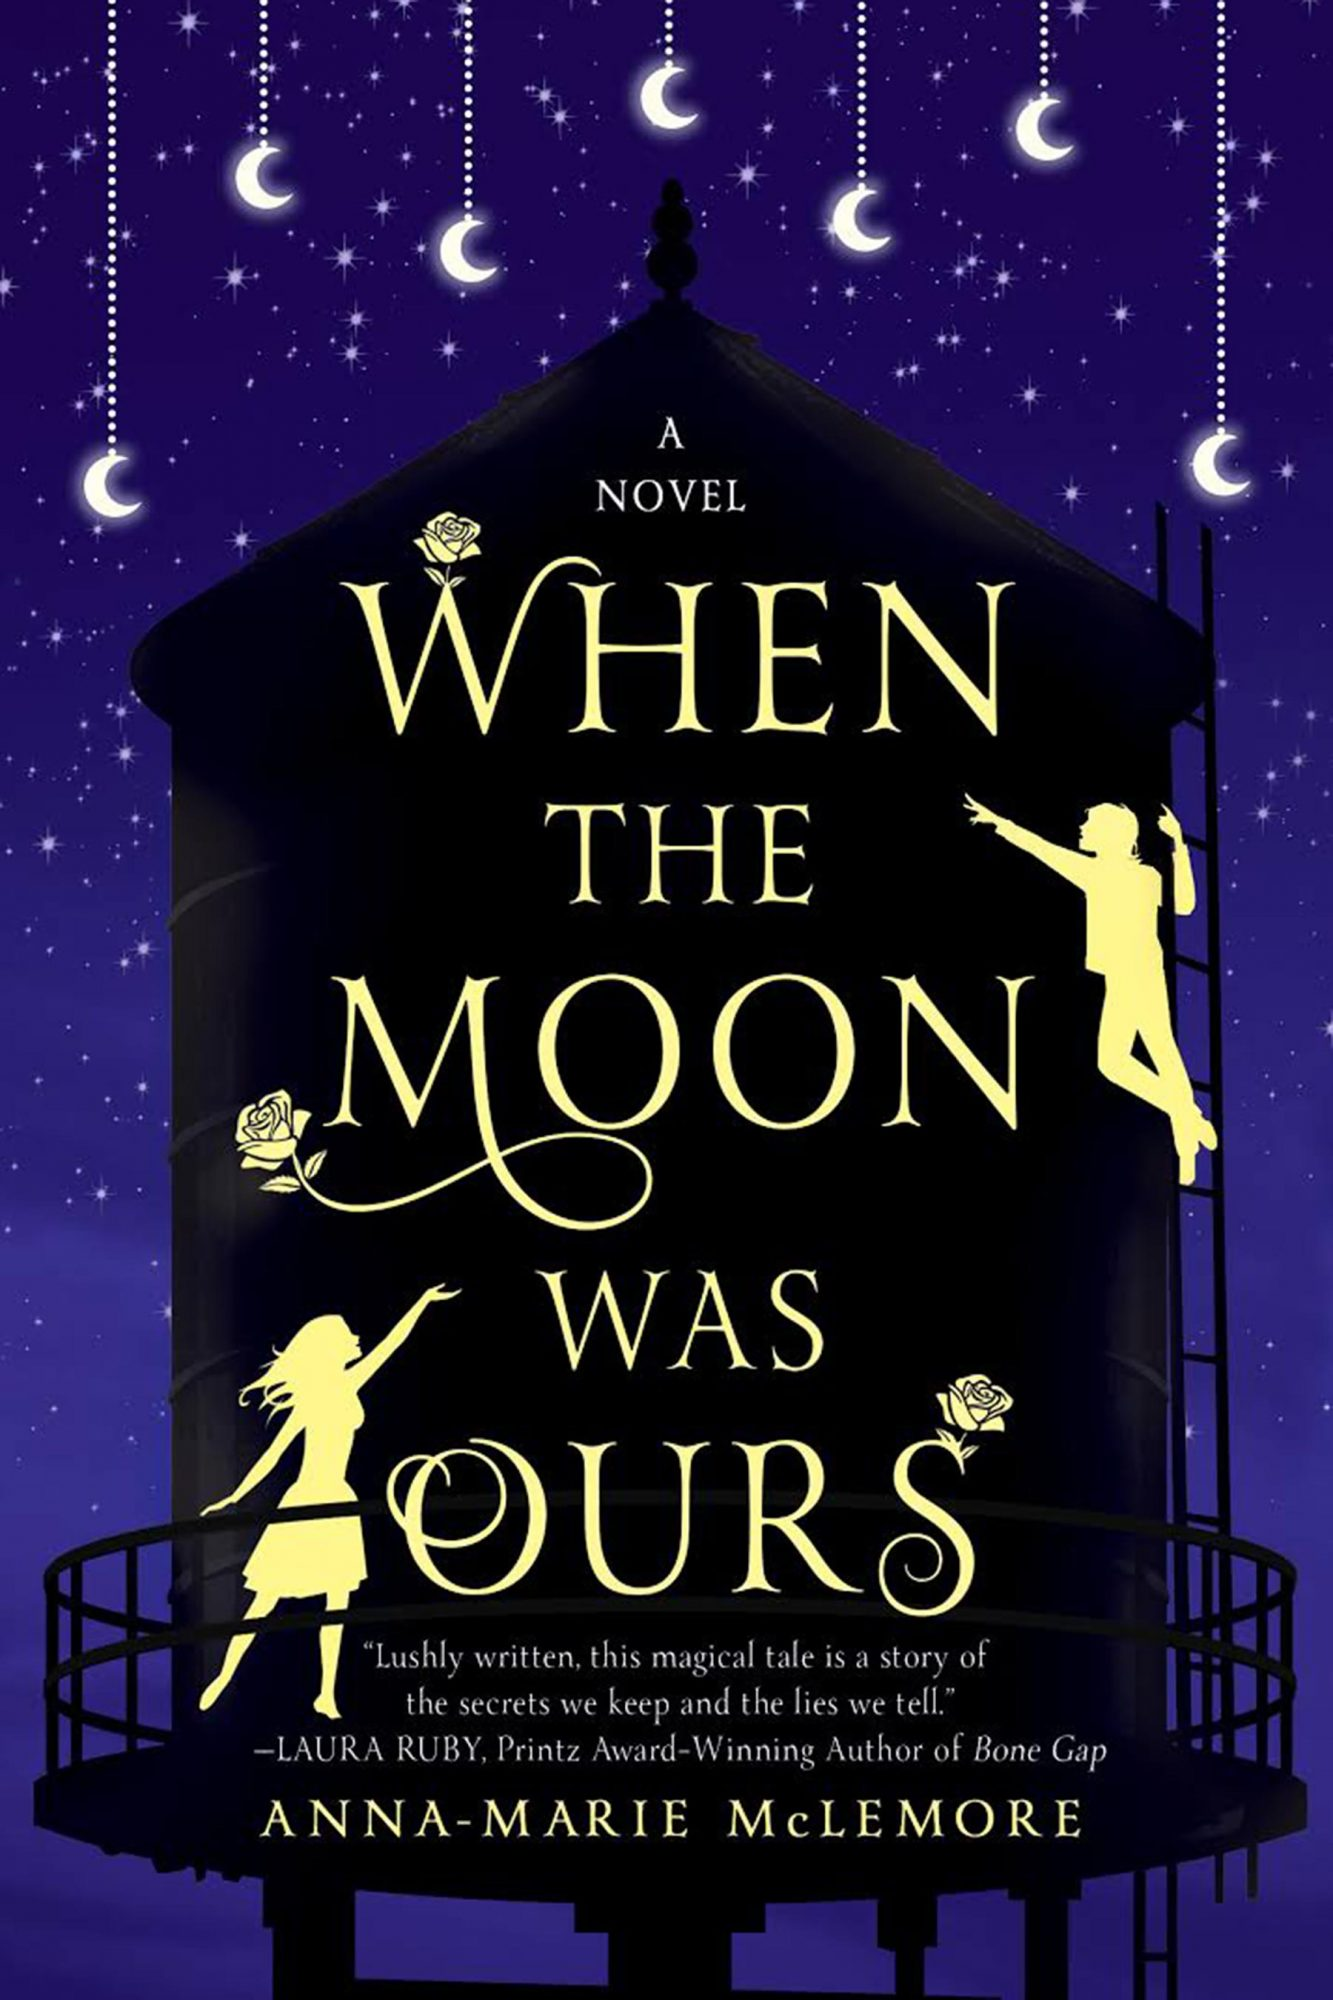 When the Moon Was Ours by Anna-Marie McLemore  CR: St. Martin's Press